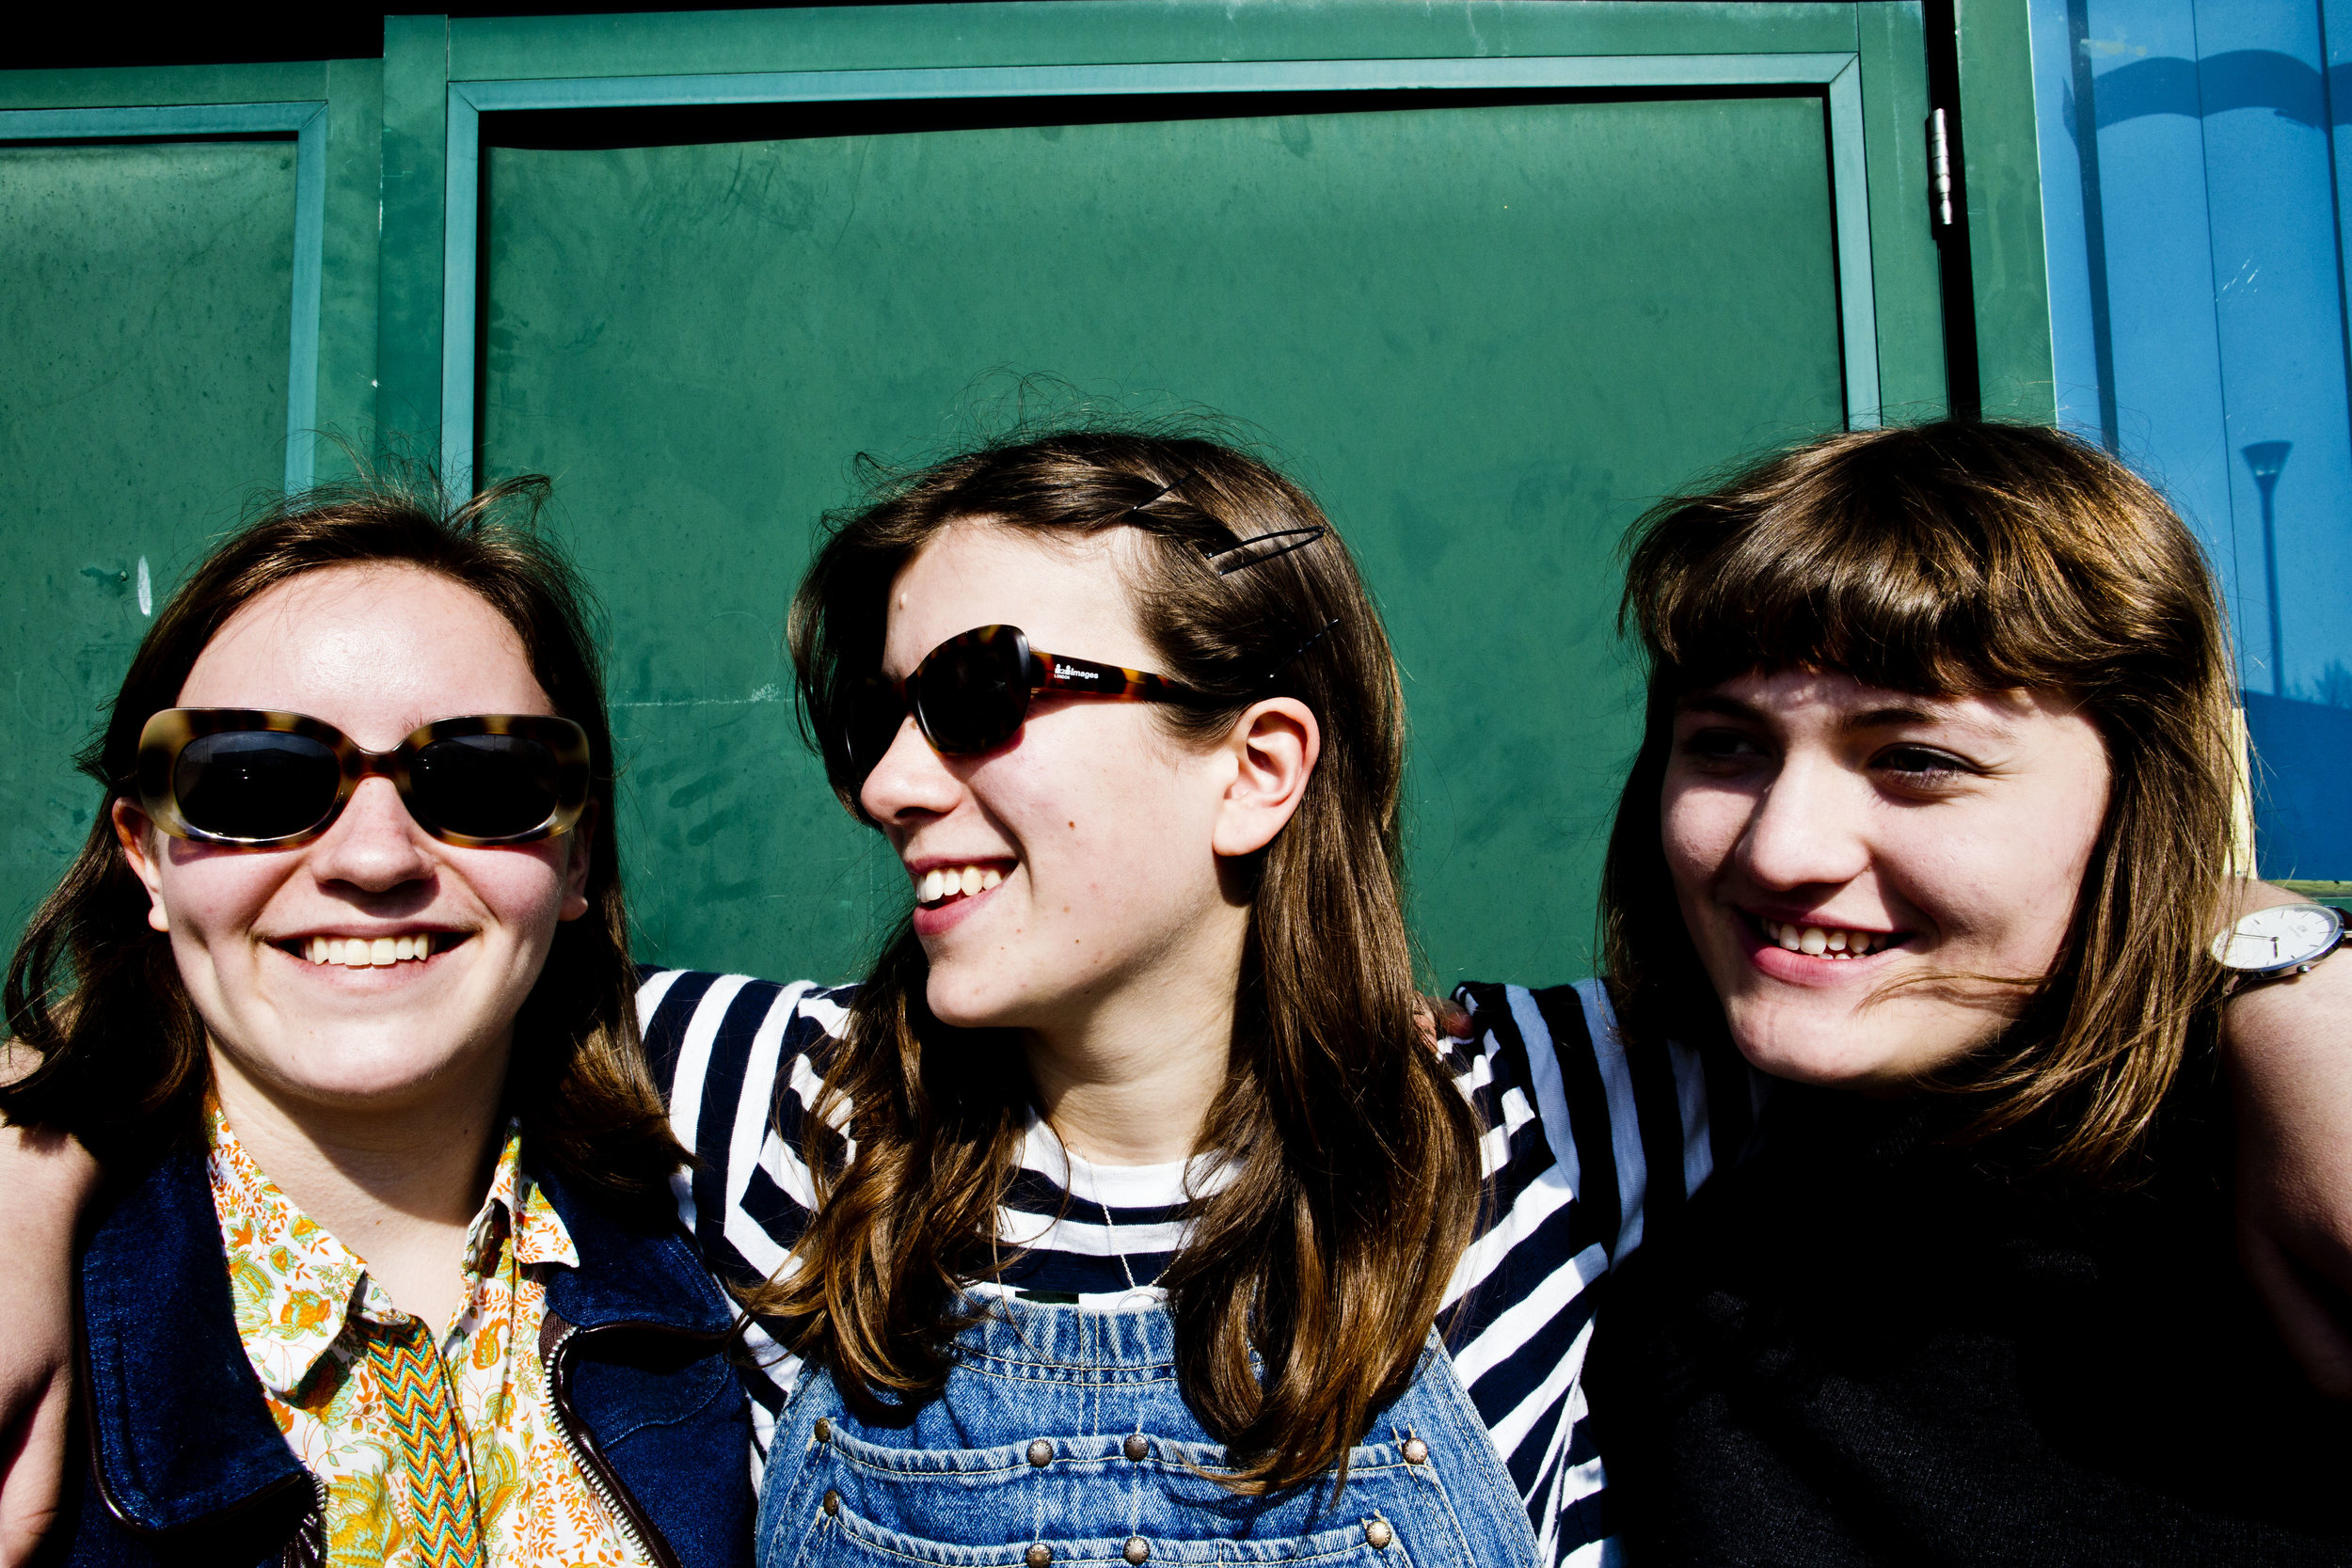 GIRL RAY - Girl Ray'ssongs document the dramas of adolescence with a wit and wistfulness far beyond their years. Inspired by the likes of Pavement,Neutral Milk Hoteland Pixies, their By The Sea show will follow theAugust 4th release of their debut album 'Earl Grey'.